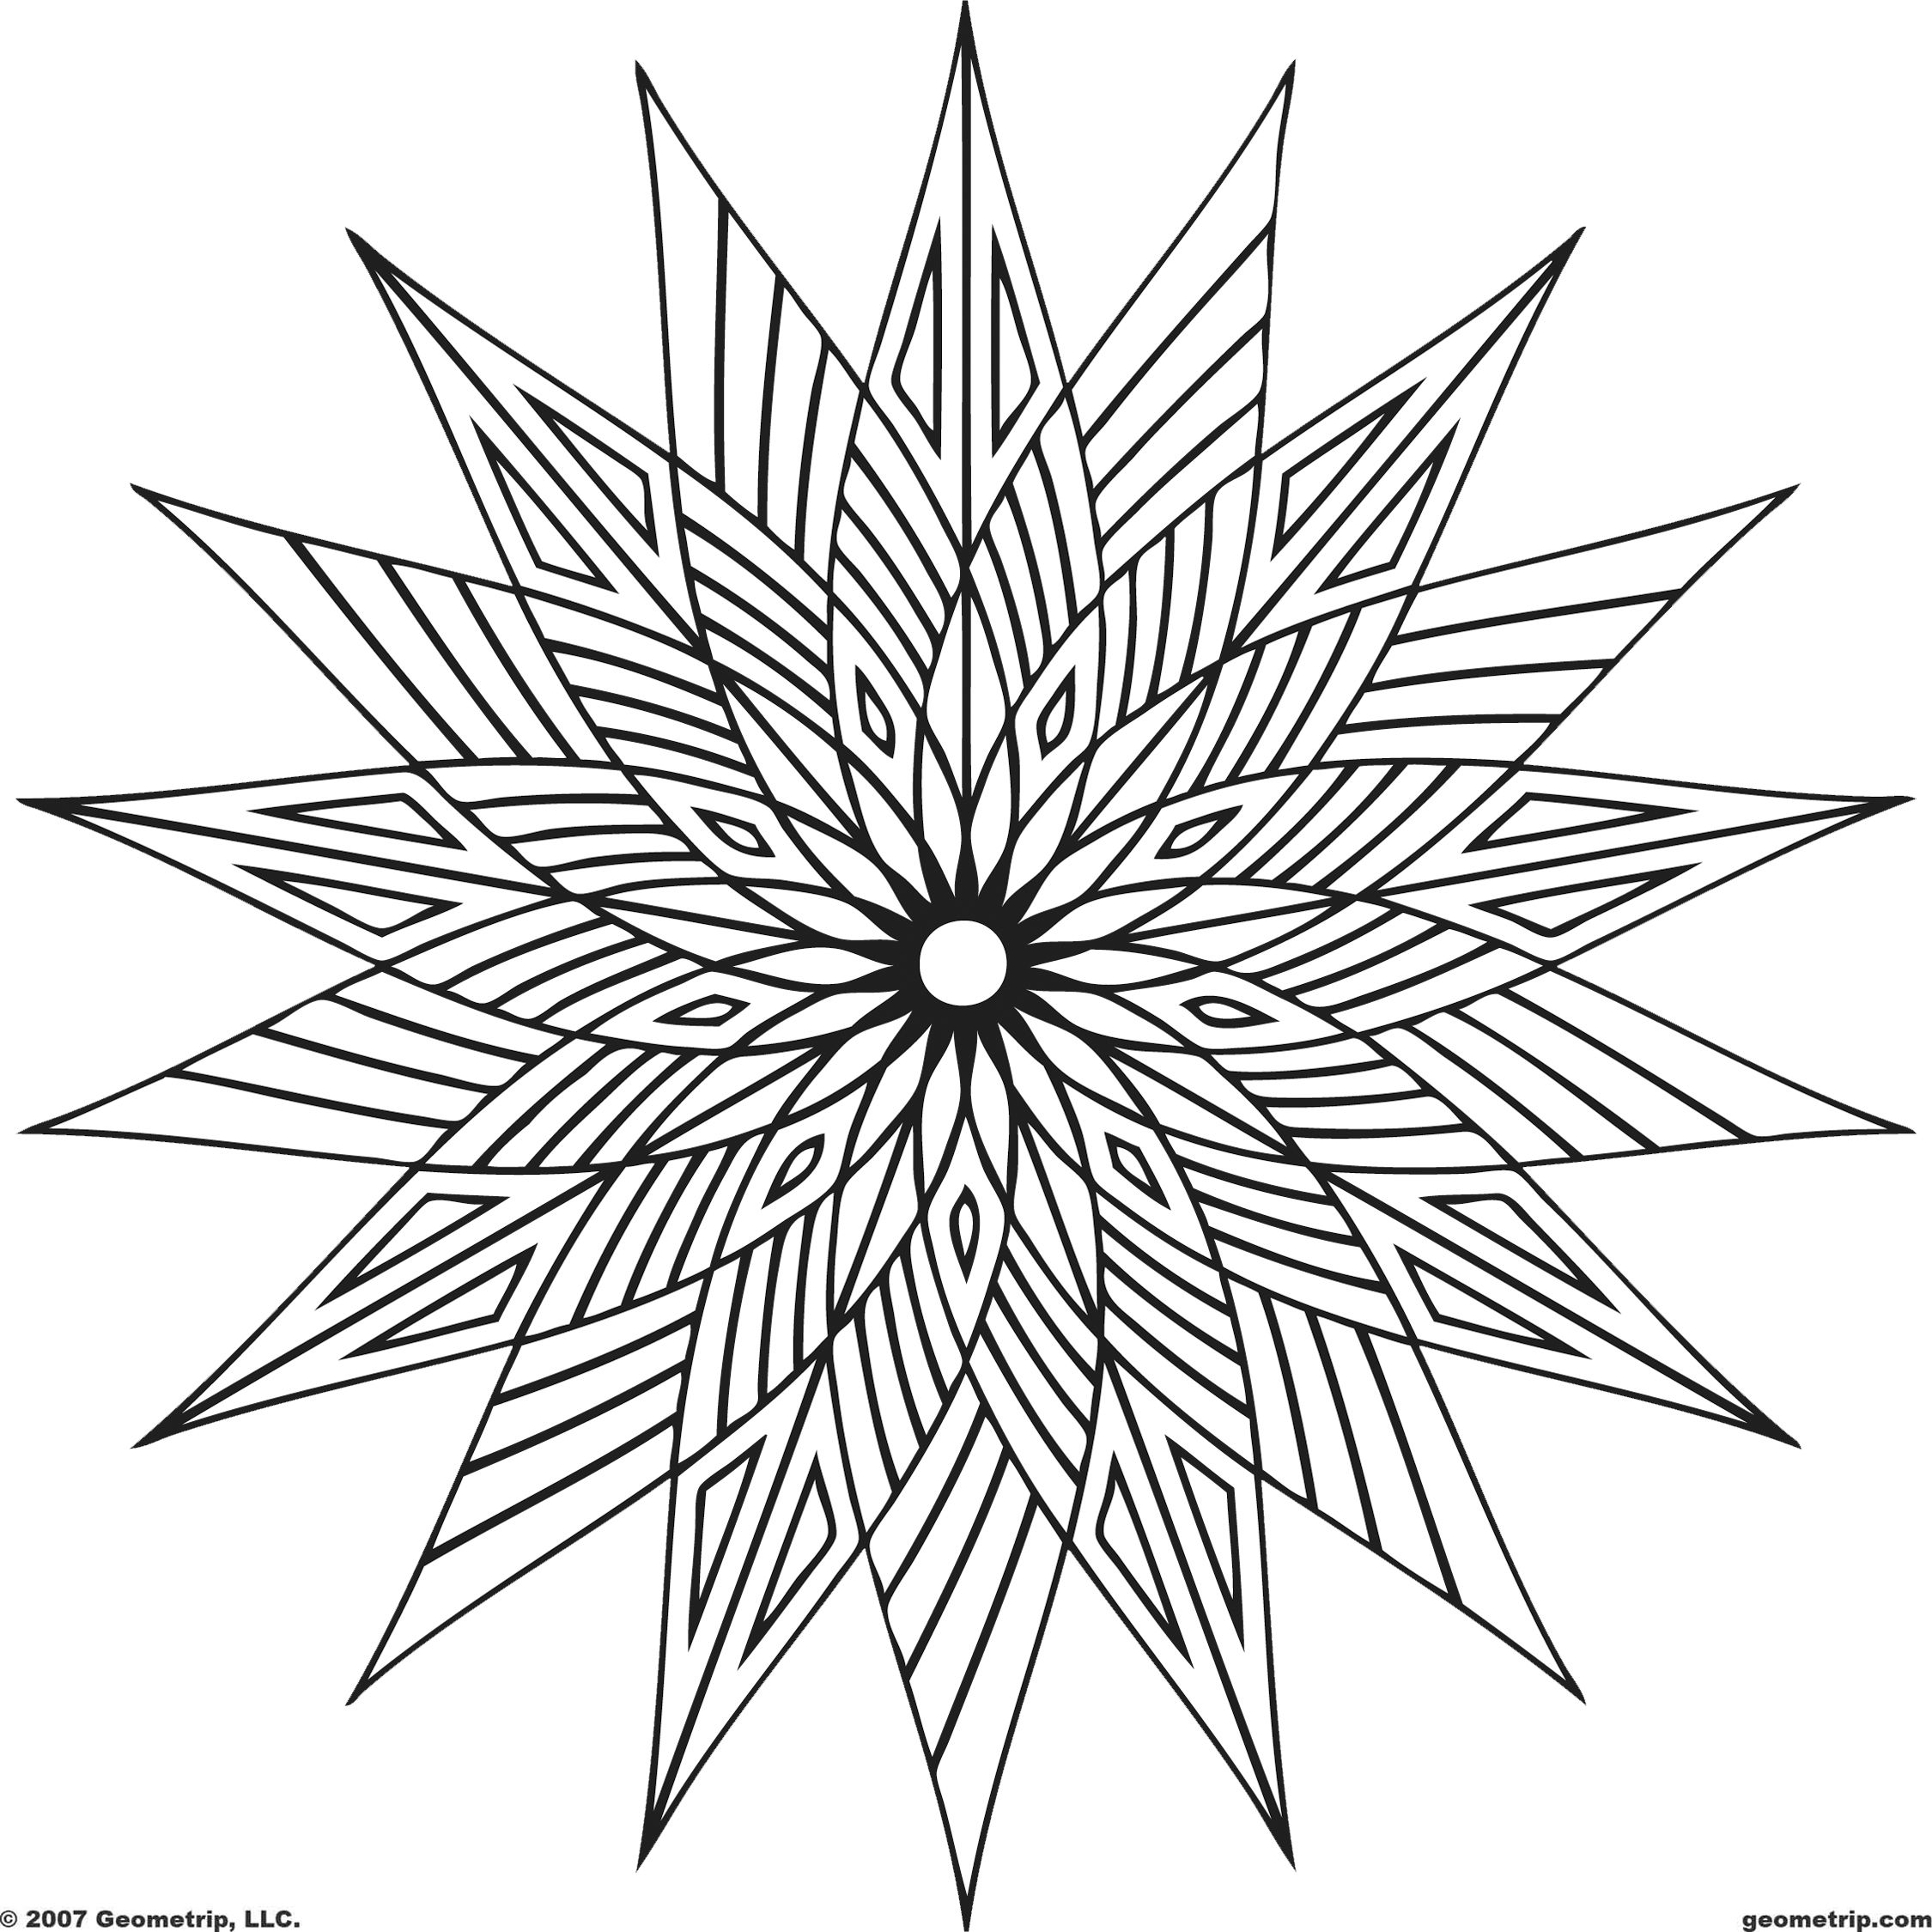 coloring pages of cool designs geometrip com free geometric